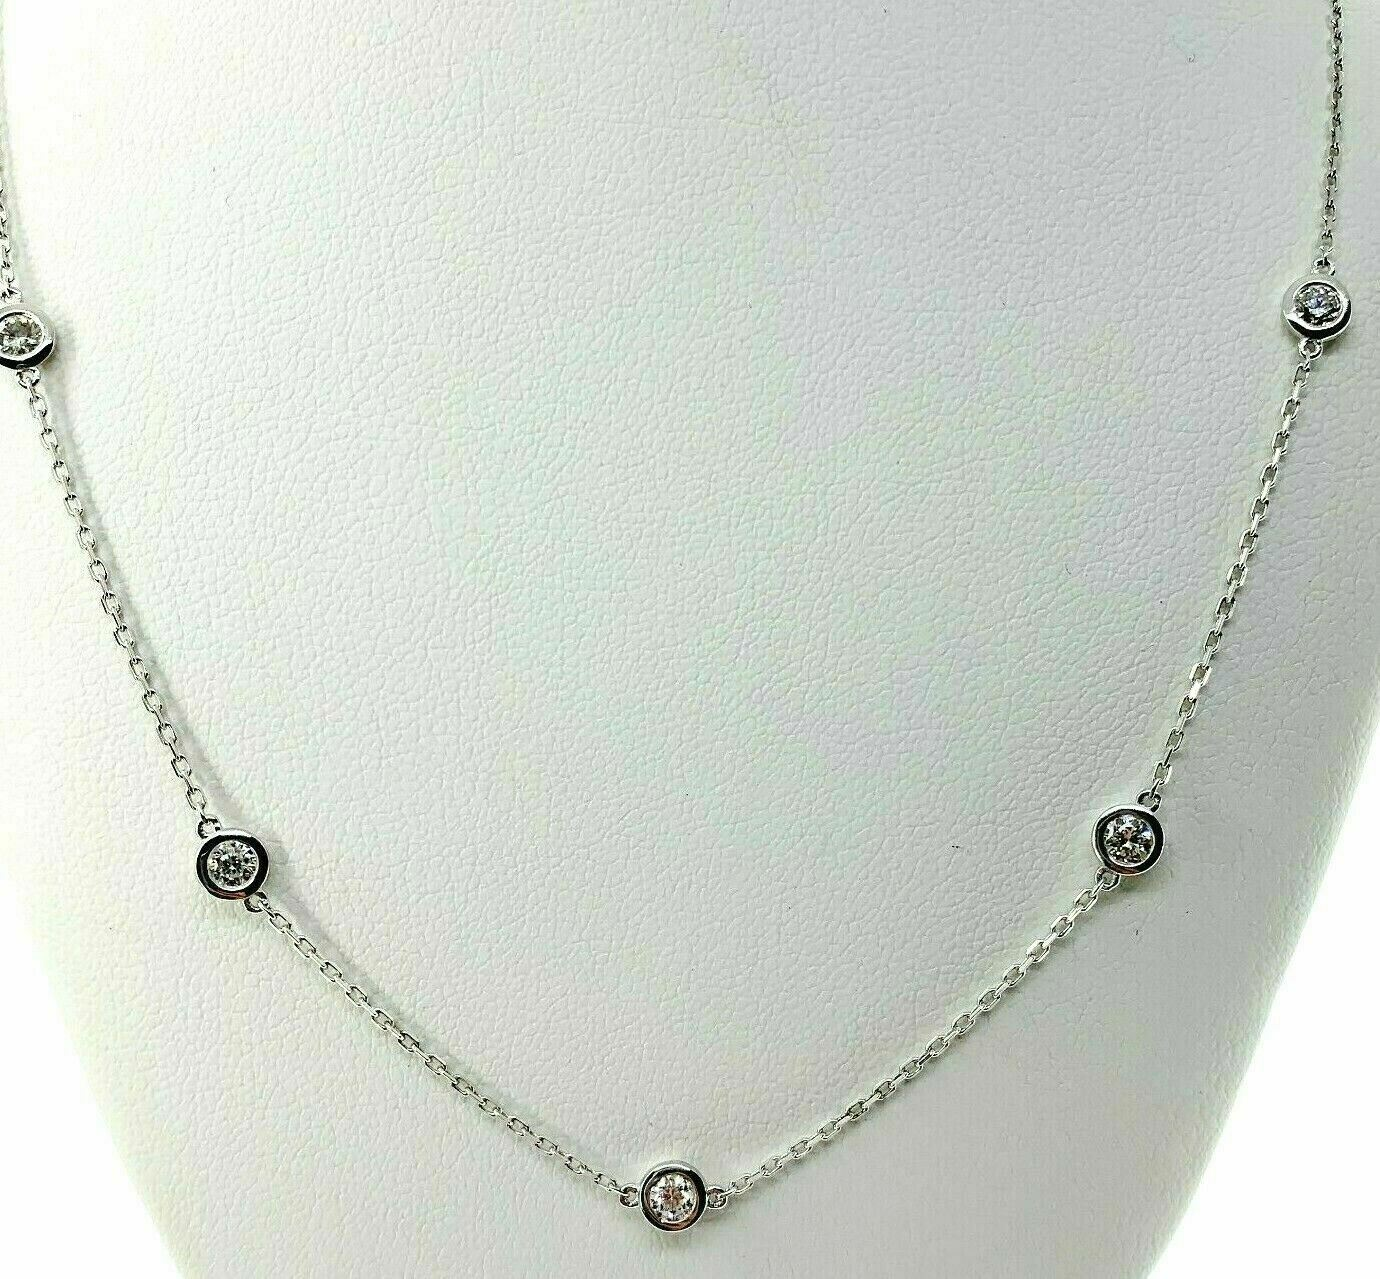 1.68 Carats t.w. Hand Assembled Diamond by The Yard Necklace Chain 14K Gold